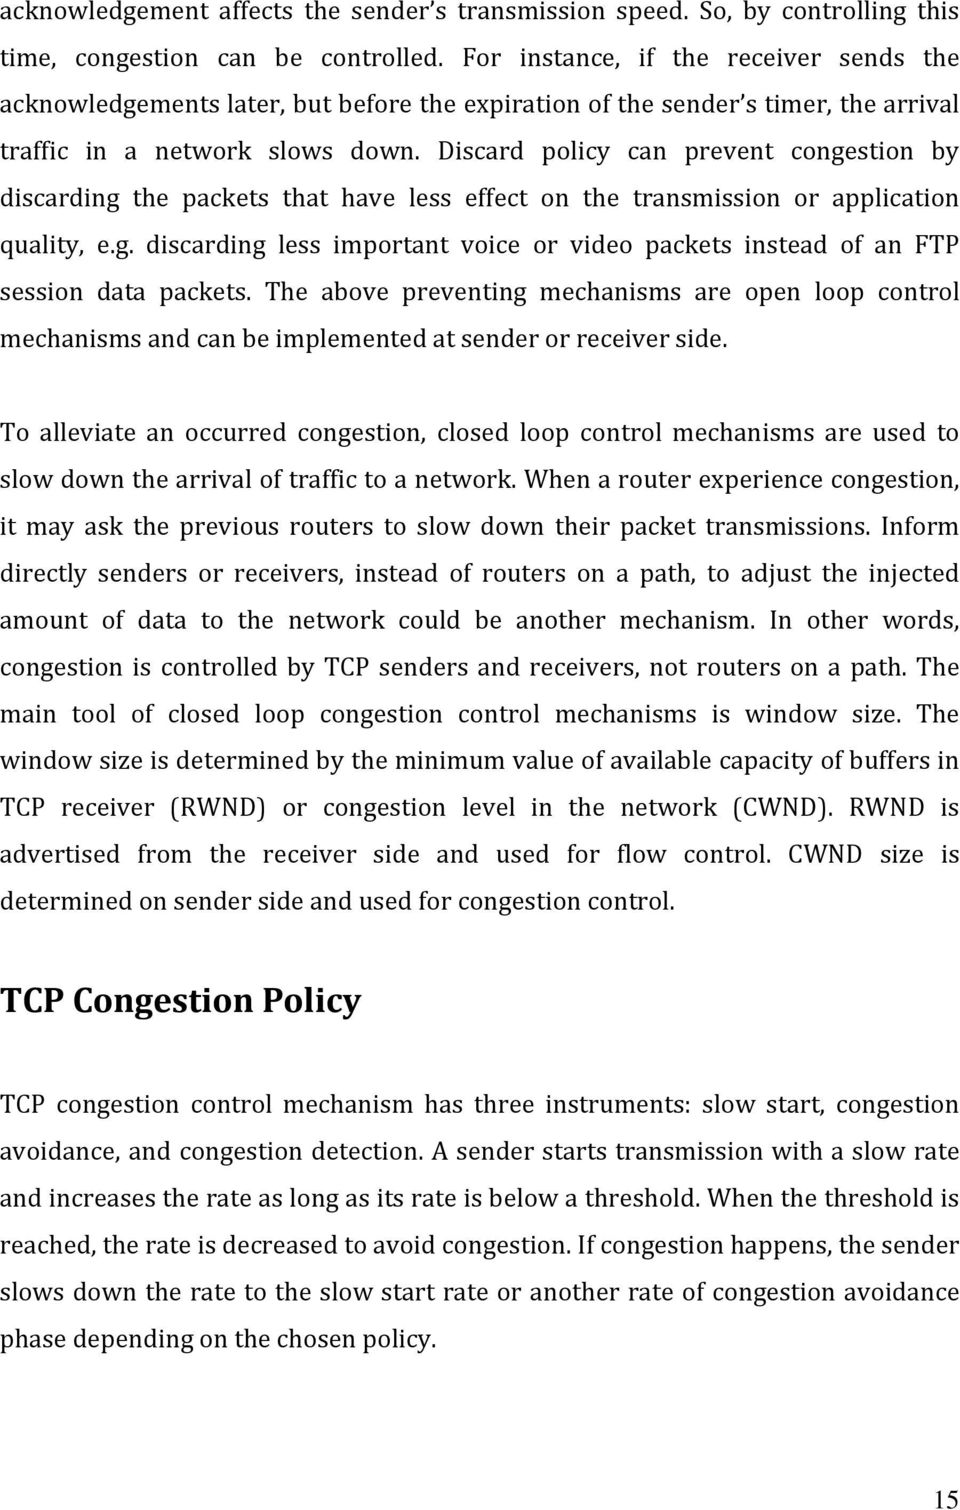 Discard policy can prevent congestion by discarding the packets that have less effect on the transmission or application quality, e.g. discarding less important voice or video packets instead of an FTP session data packets.